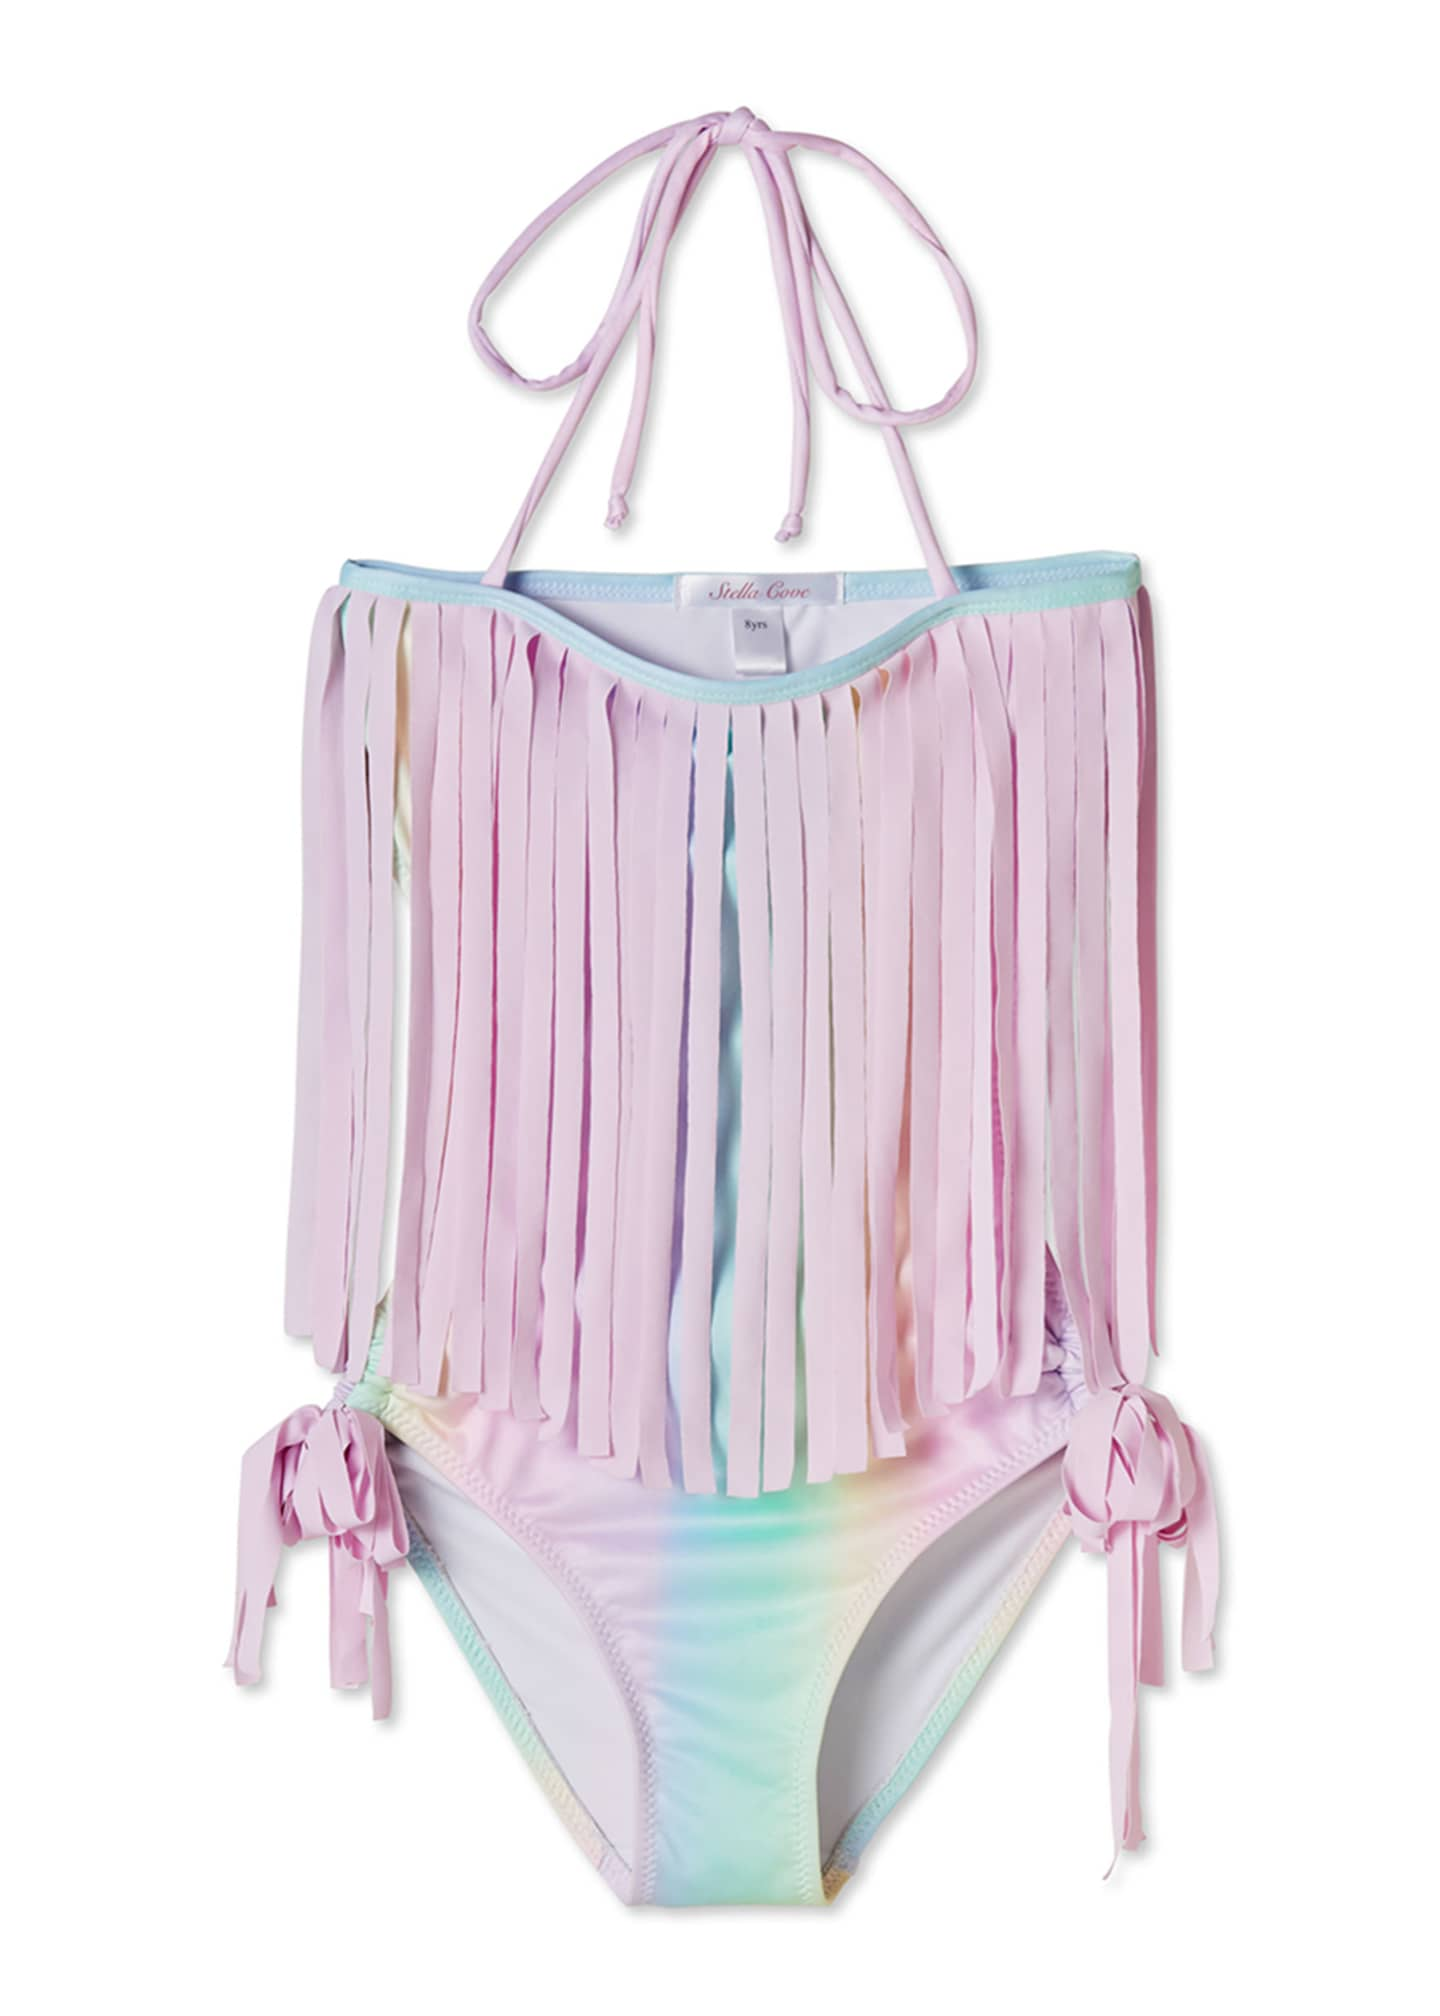 Image 1 of 2: Girls' Rainbow Open-Back One-Piece Swimsuit, 4T-14